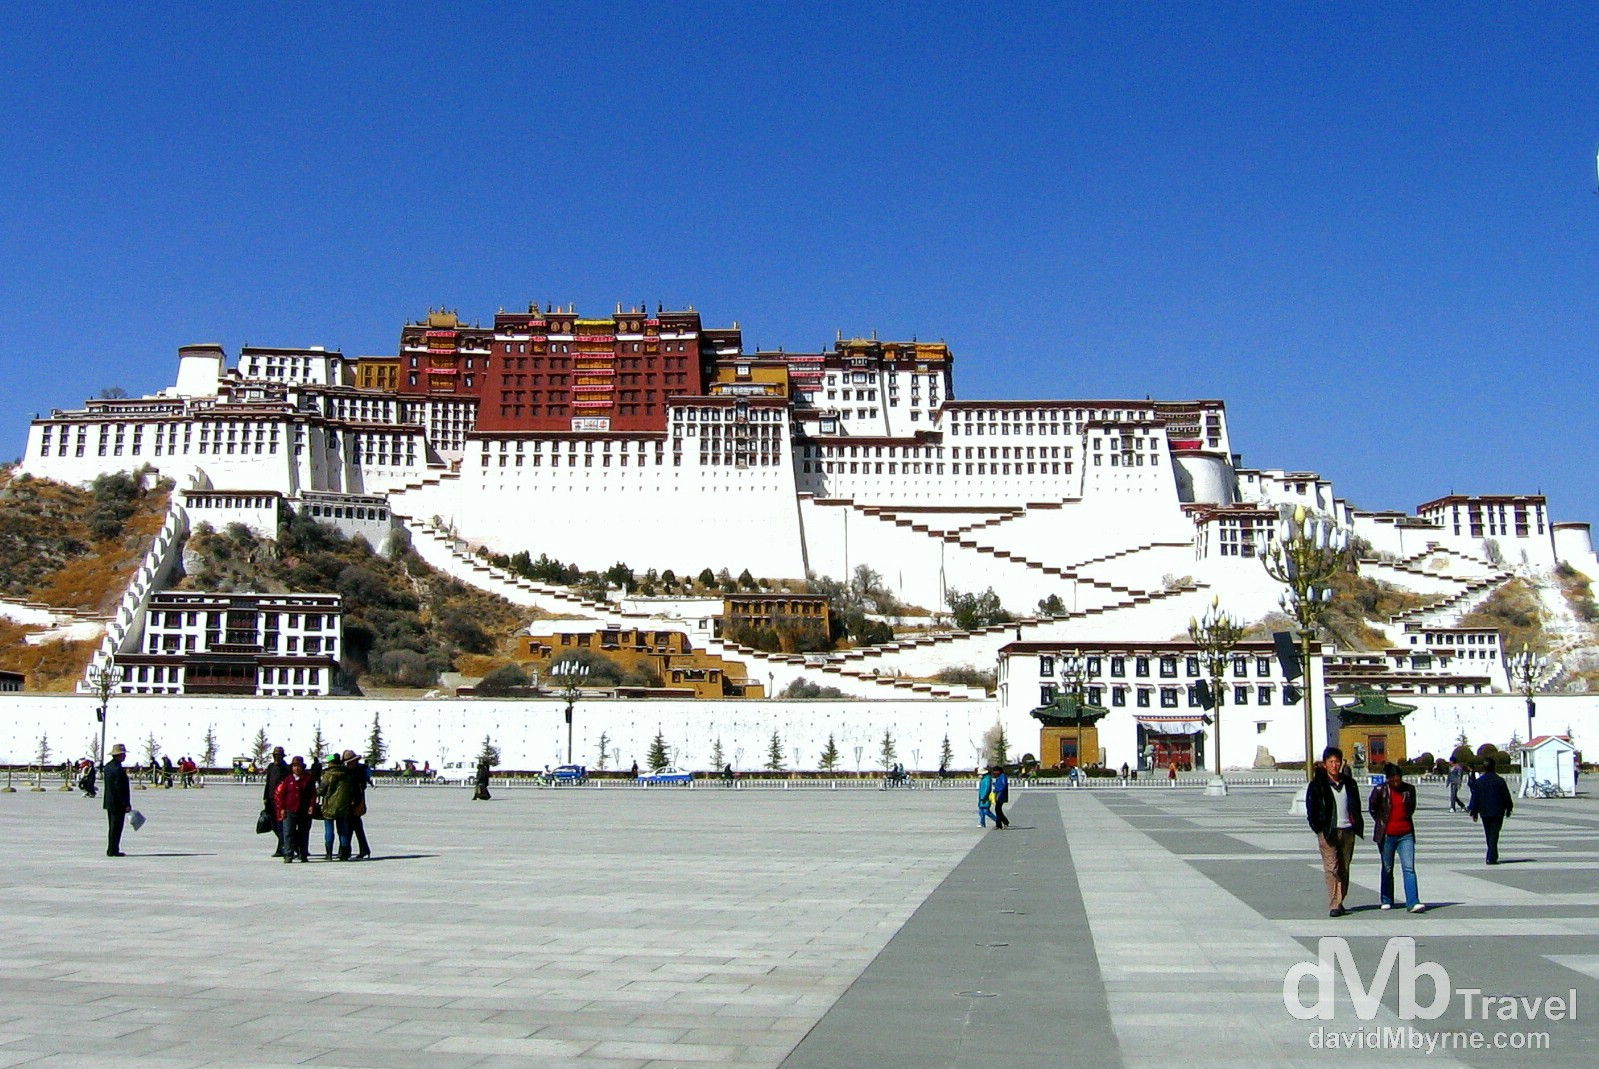 The Potala Palace as seen from People's Park, Lhasa, Tibet. February 25th, 2008.